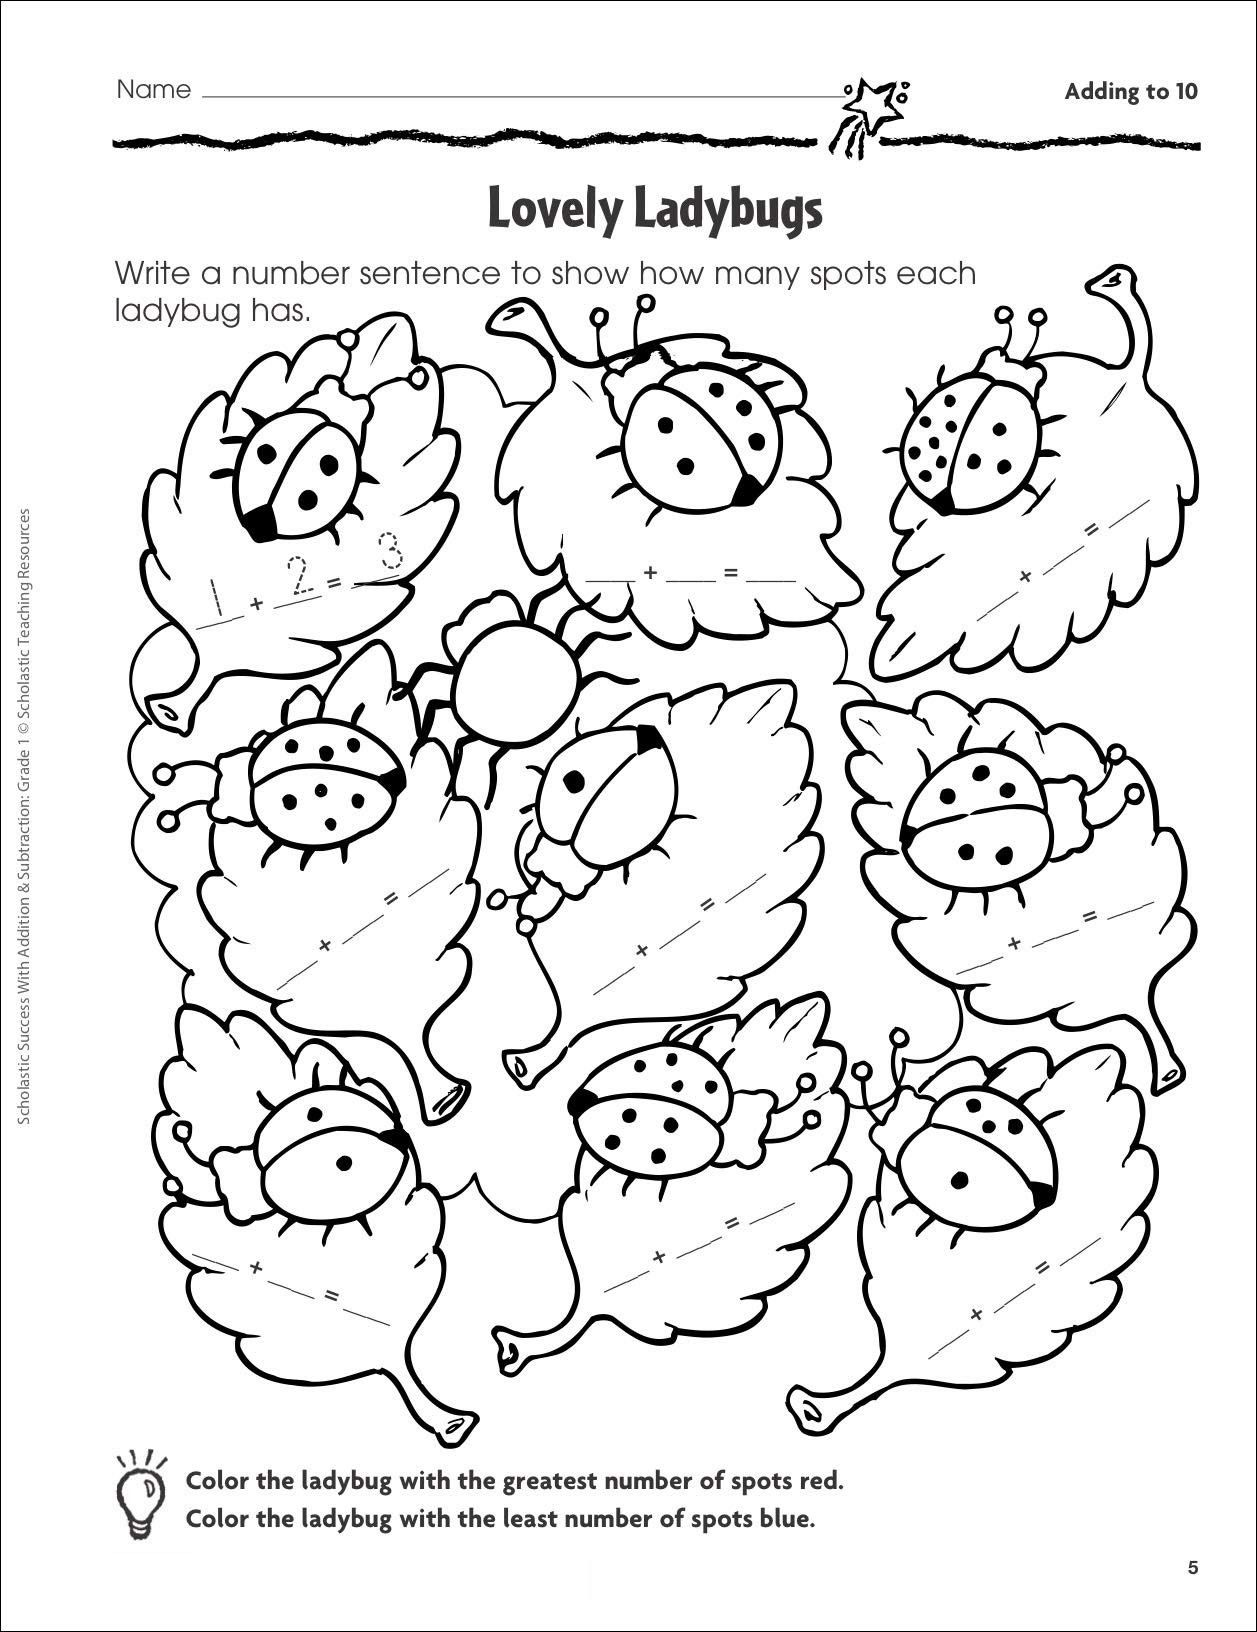 Predownload: 4 Free Math Worksheets Second Grade 2 Skip Counting Skip Counting By 10 From 1 100 Cel Spring Math Worksheets Free Math Worksheets Kindergarten Math Worksheets [ 1632 x 1257 Pixel ]